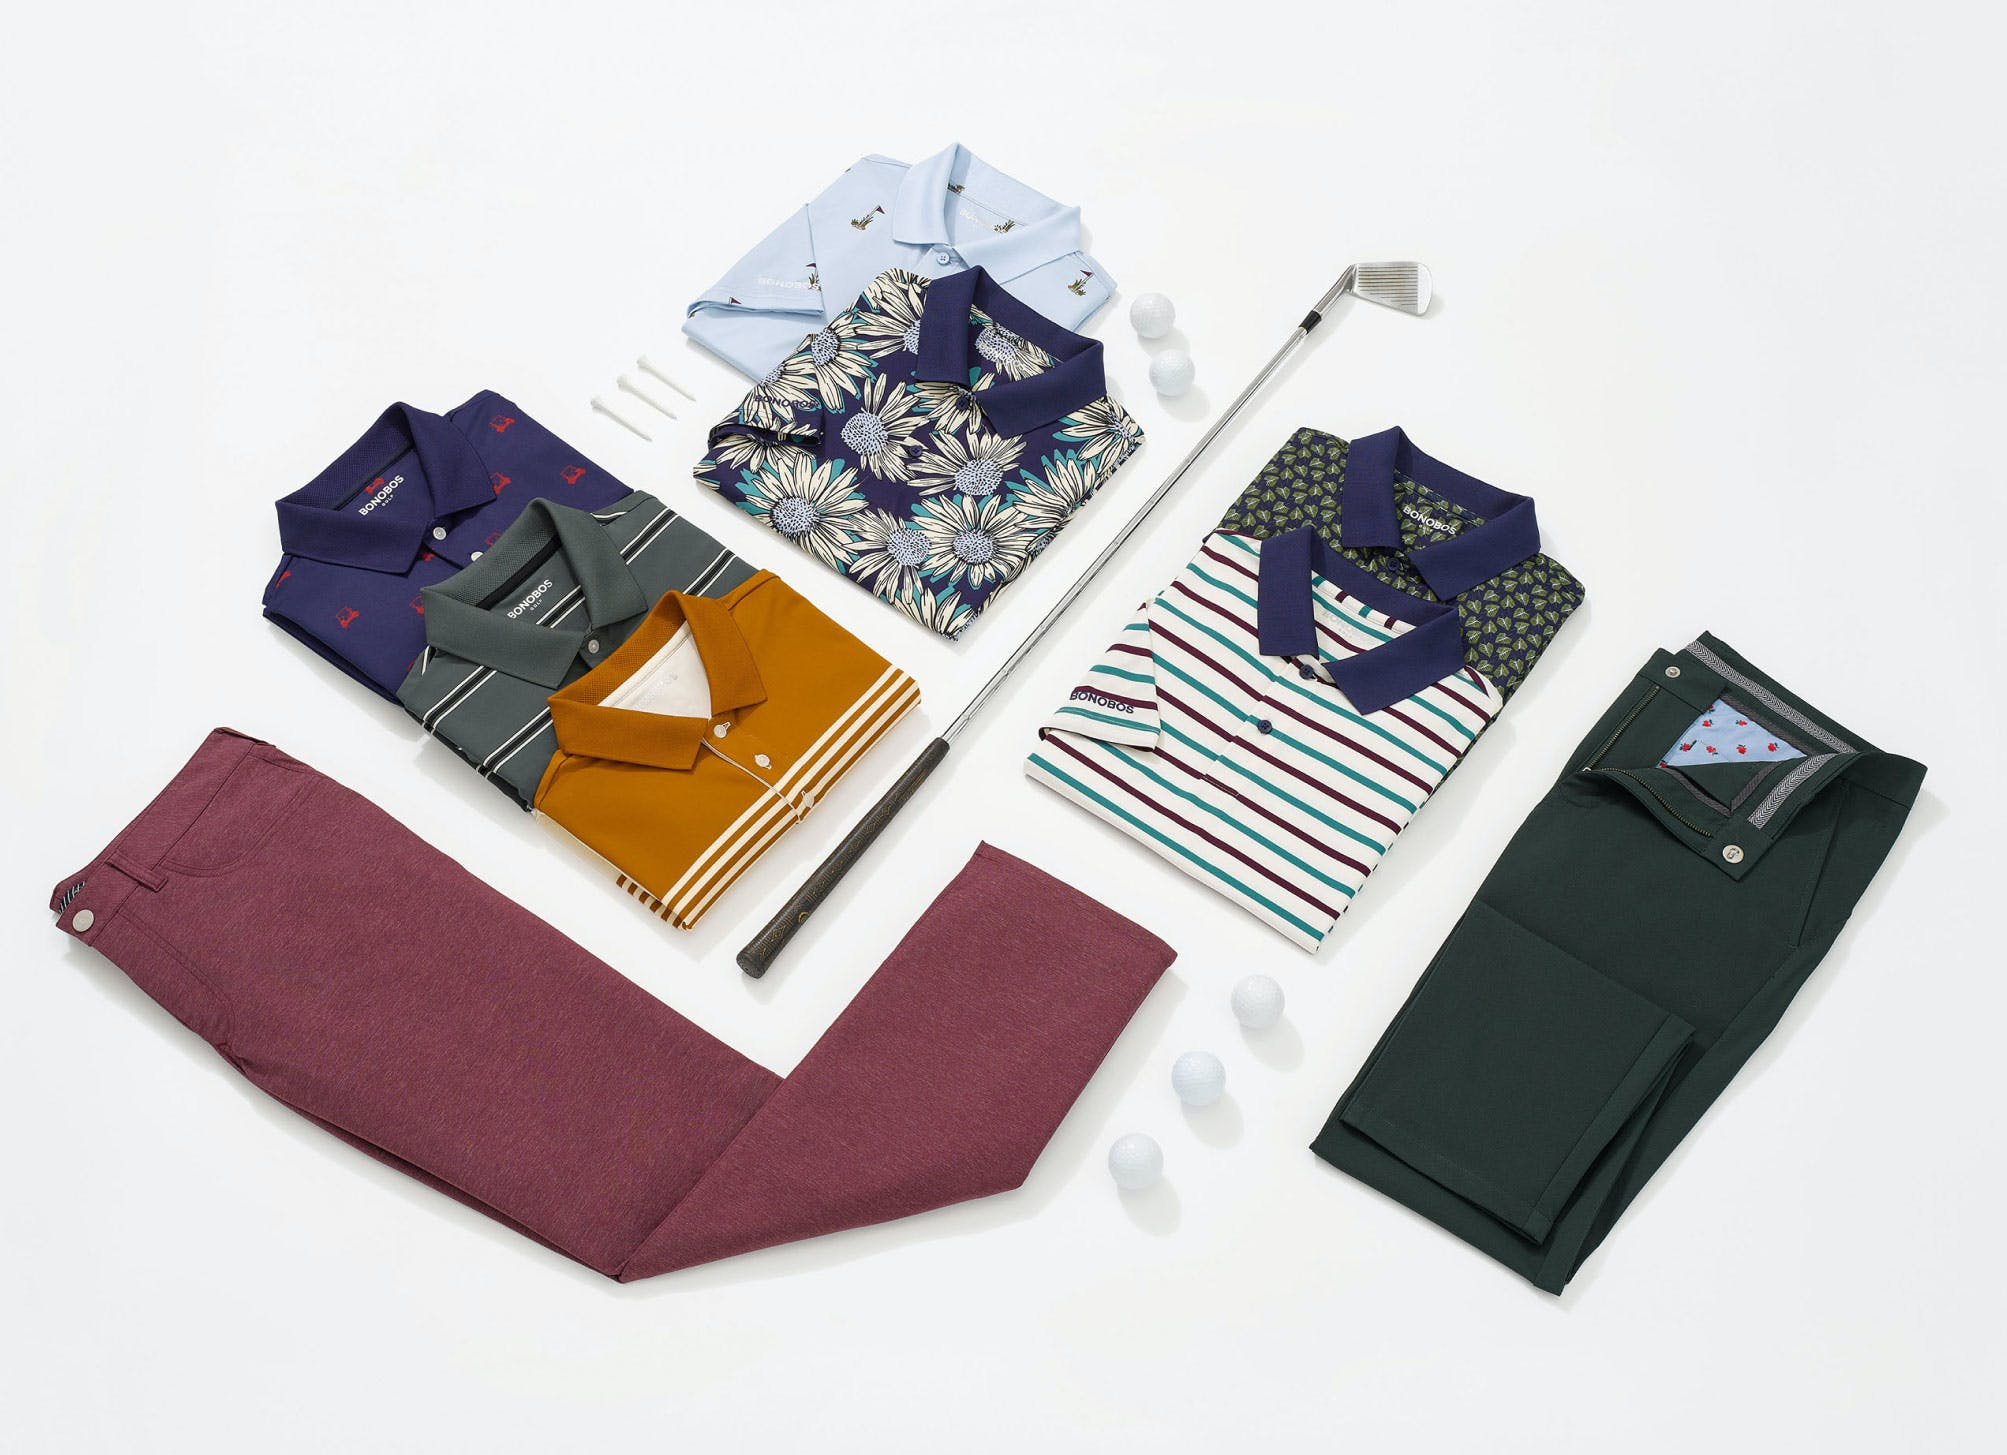 image of golf clothing and accessories